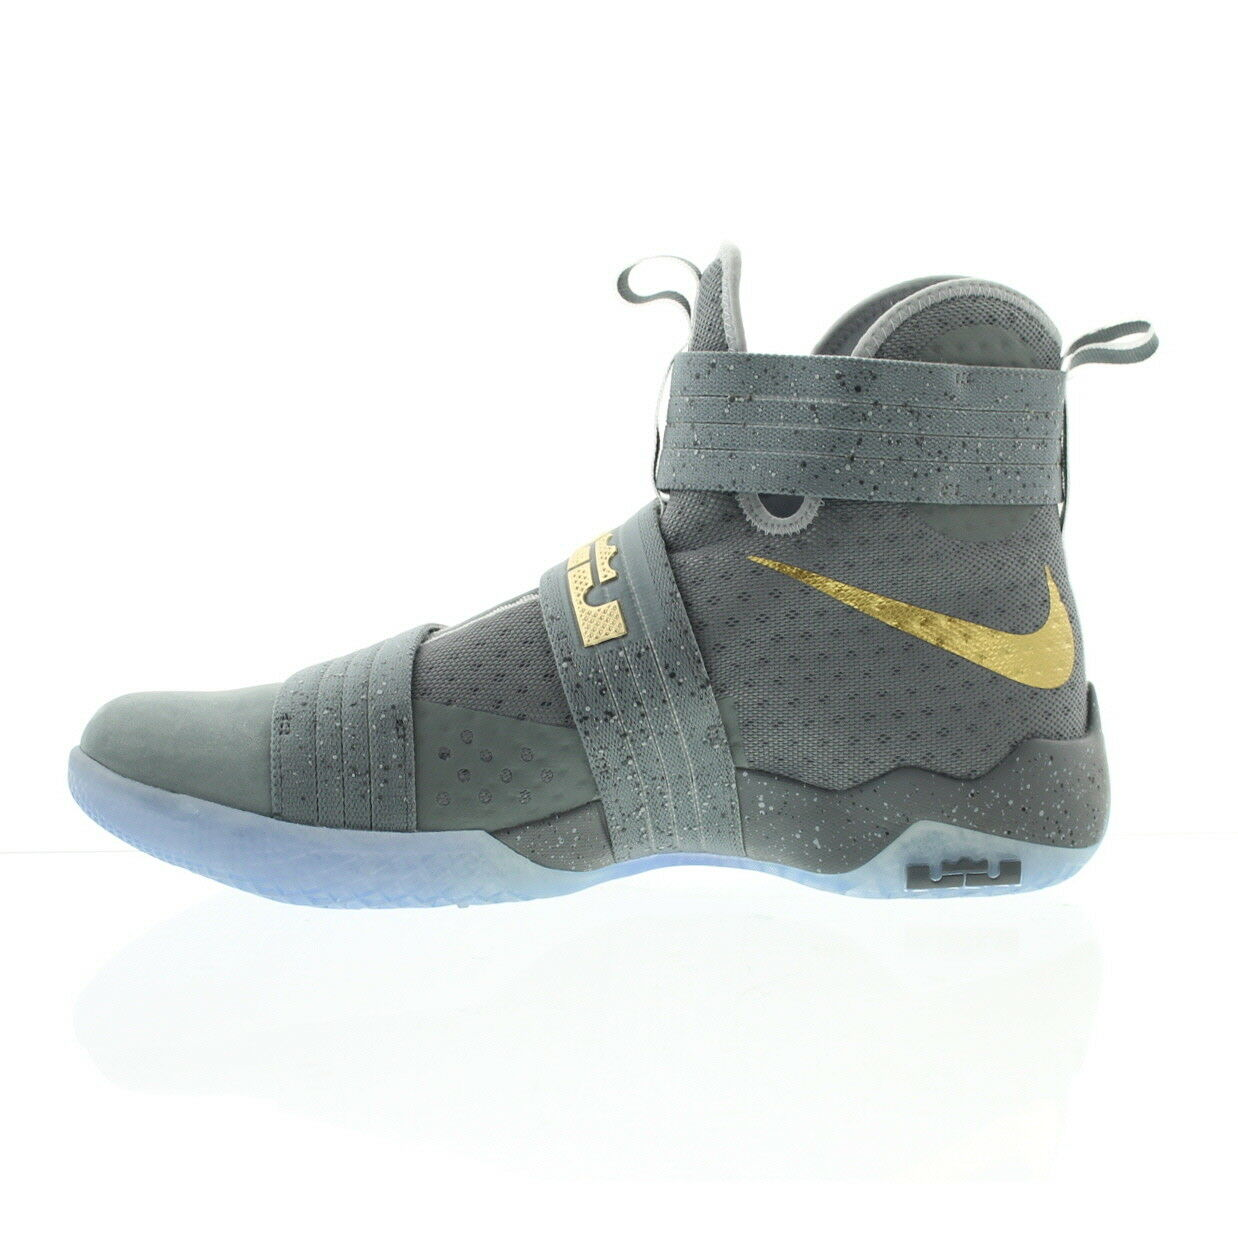 a2f880c6a5d Size 14 Men Nike Lebron James Soldier 10 SFG PE Athletic Basketball ...